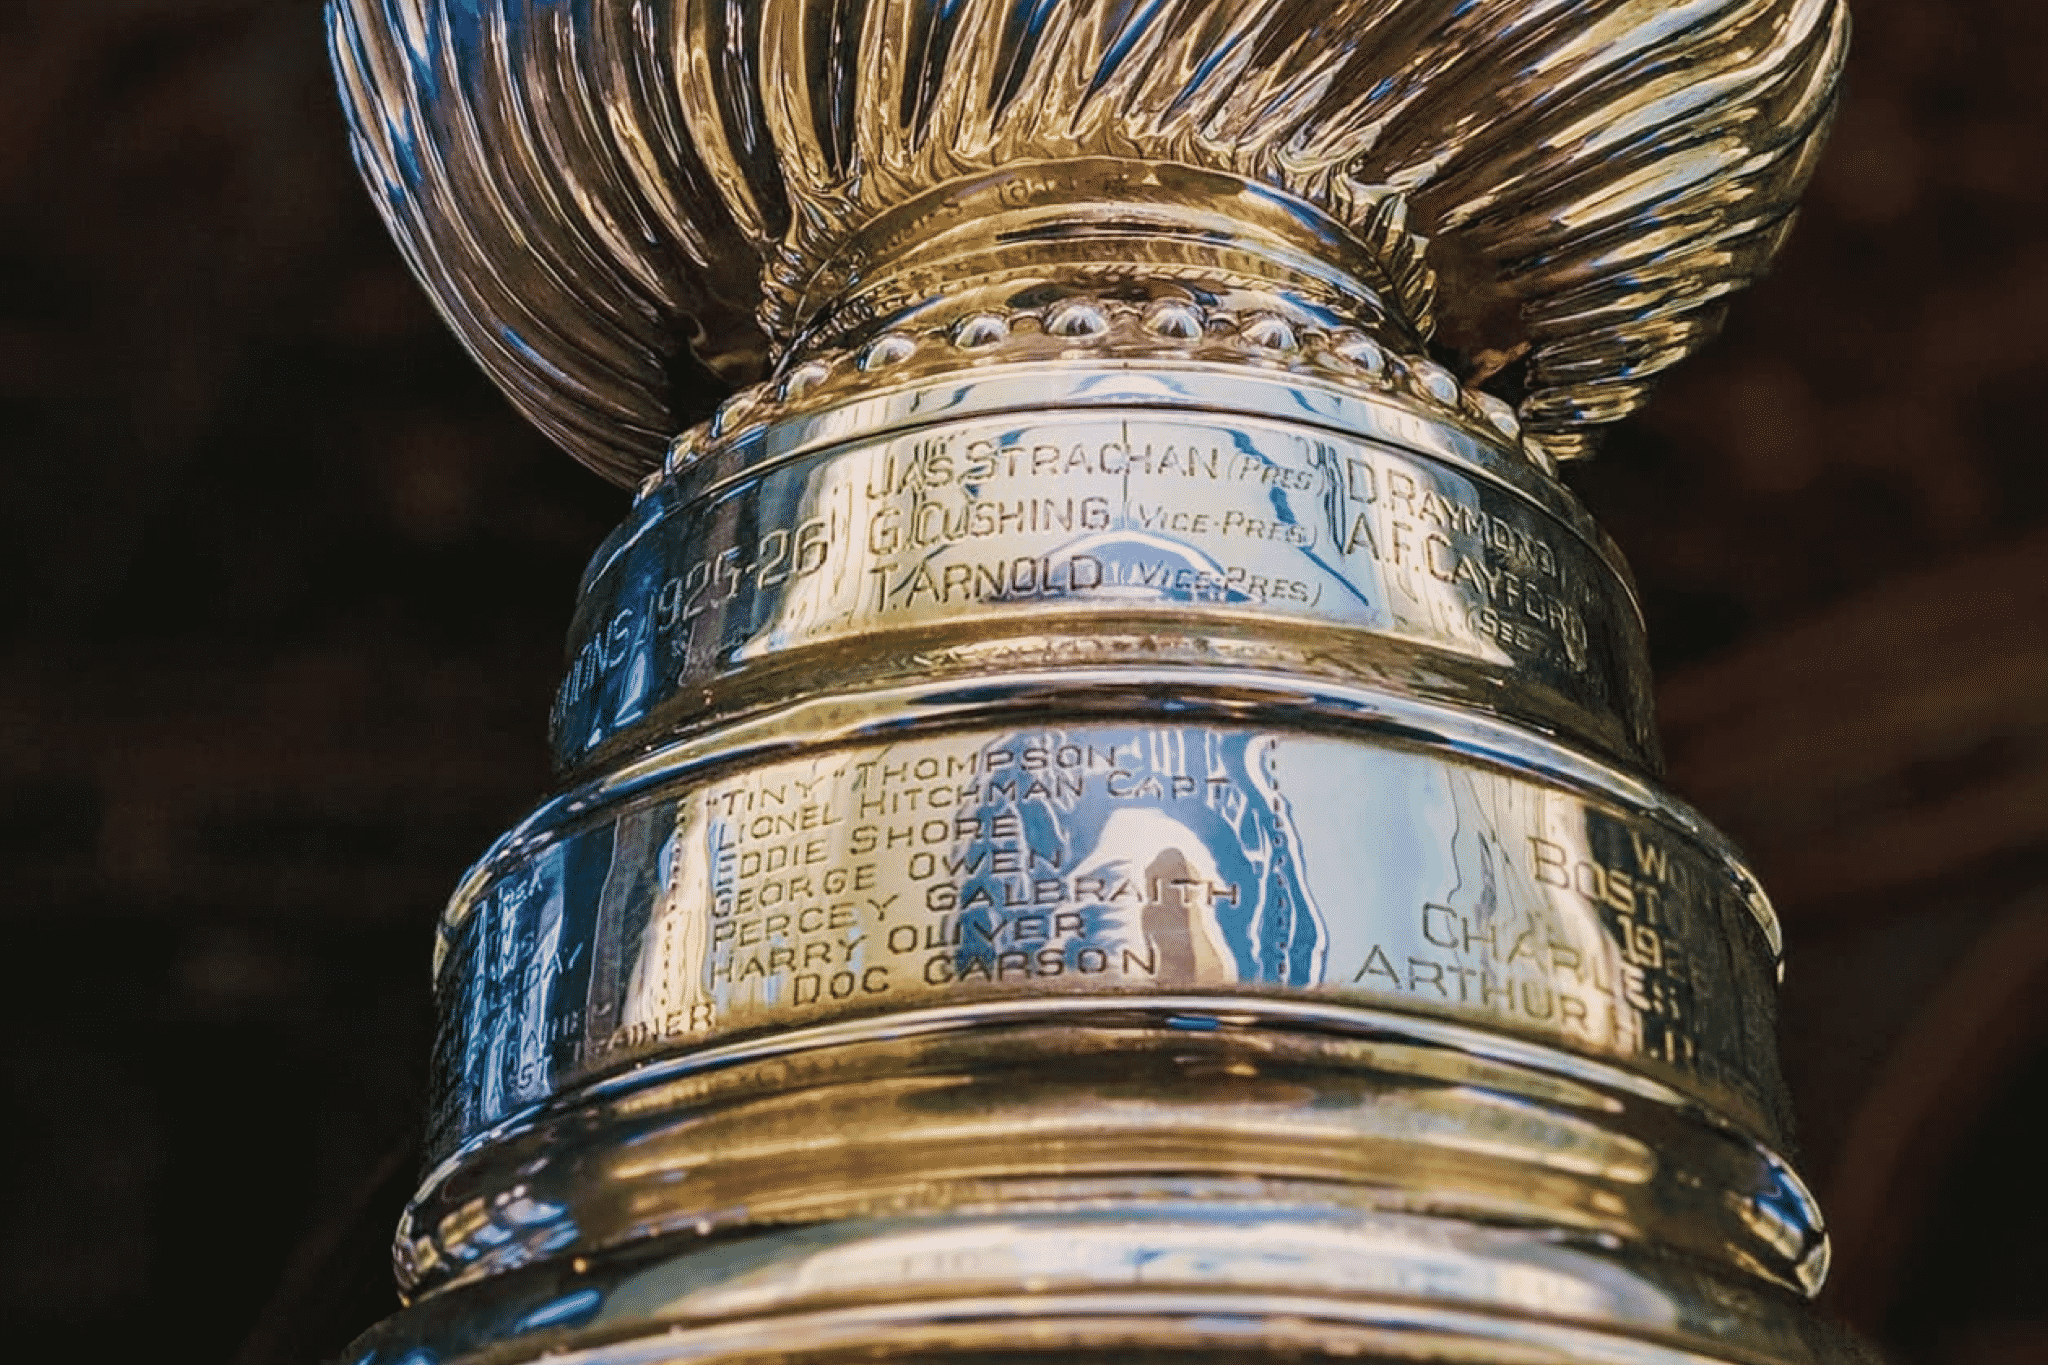 Do Stanley Cup Winners Get Prize Money?